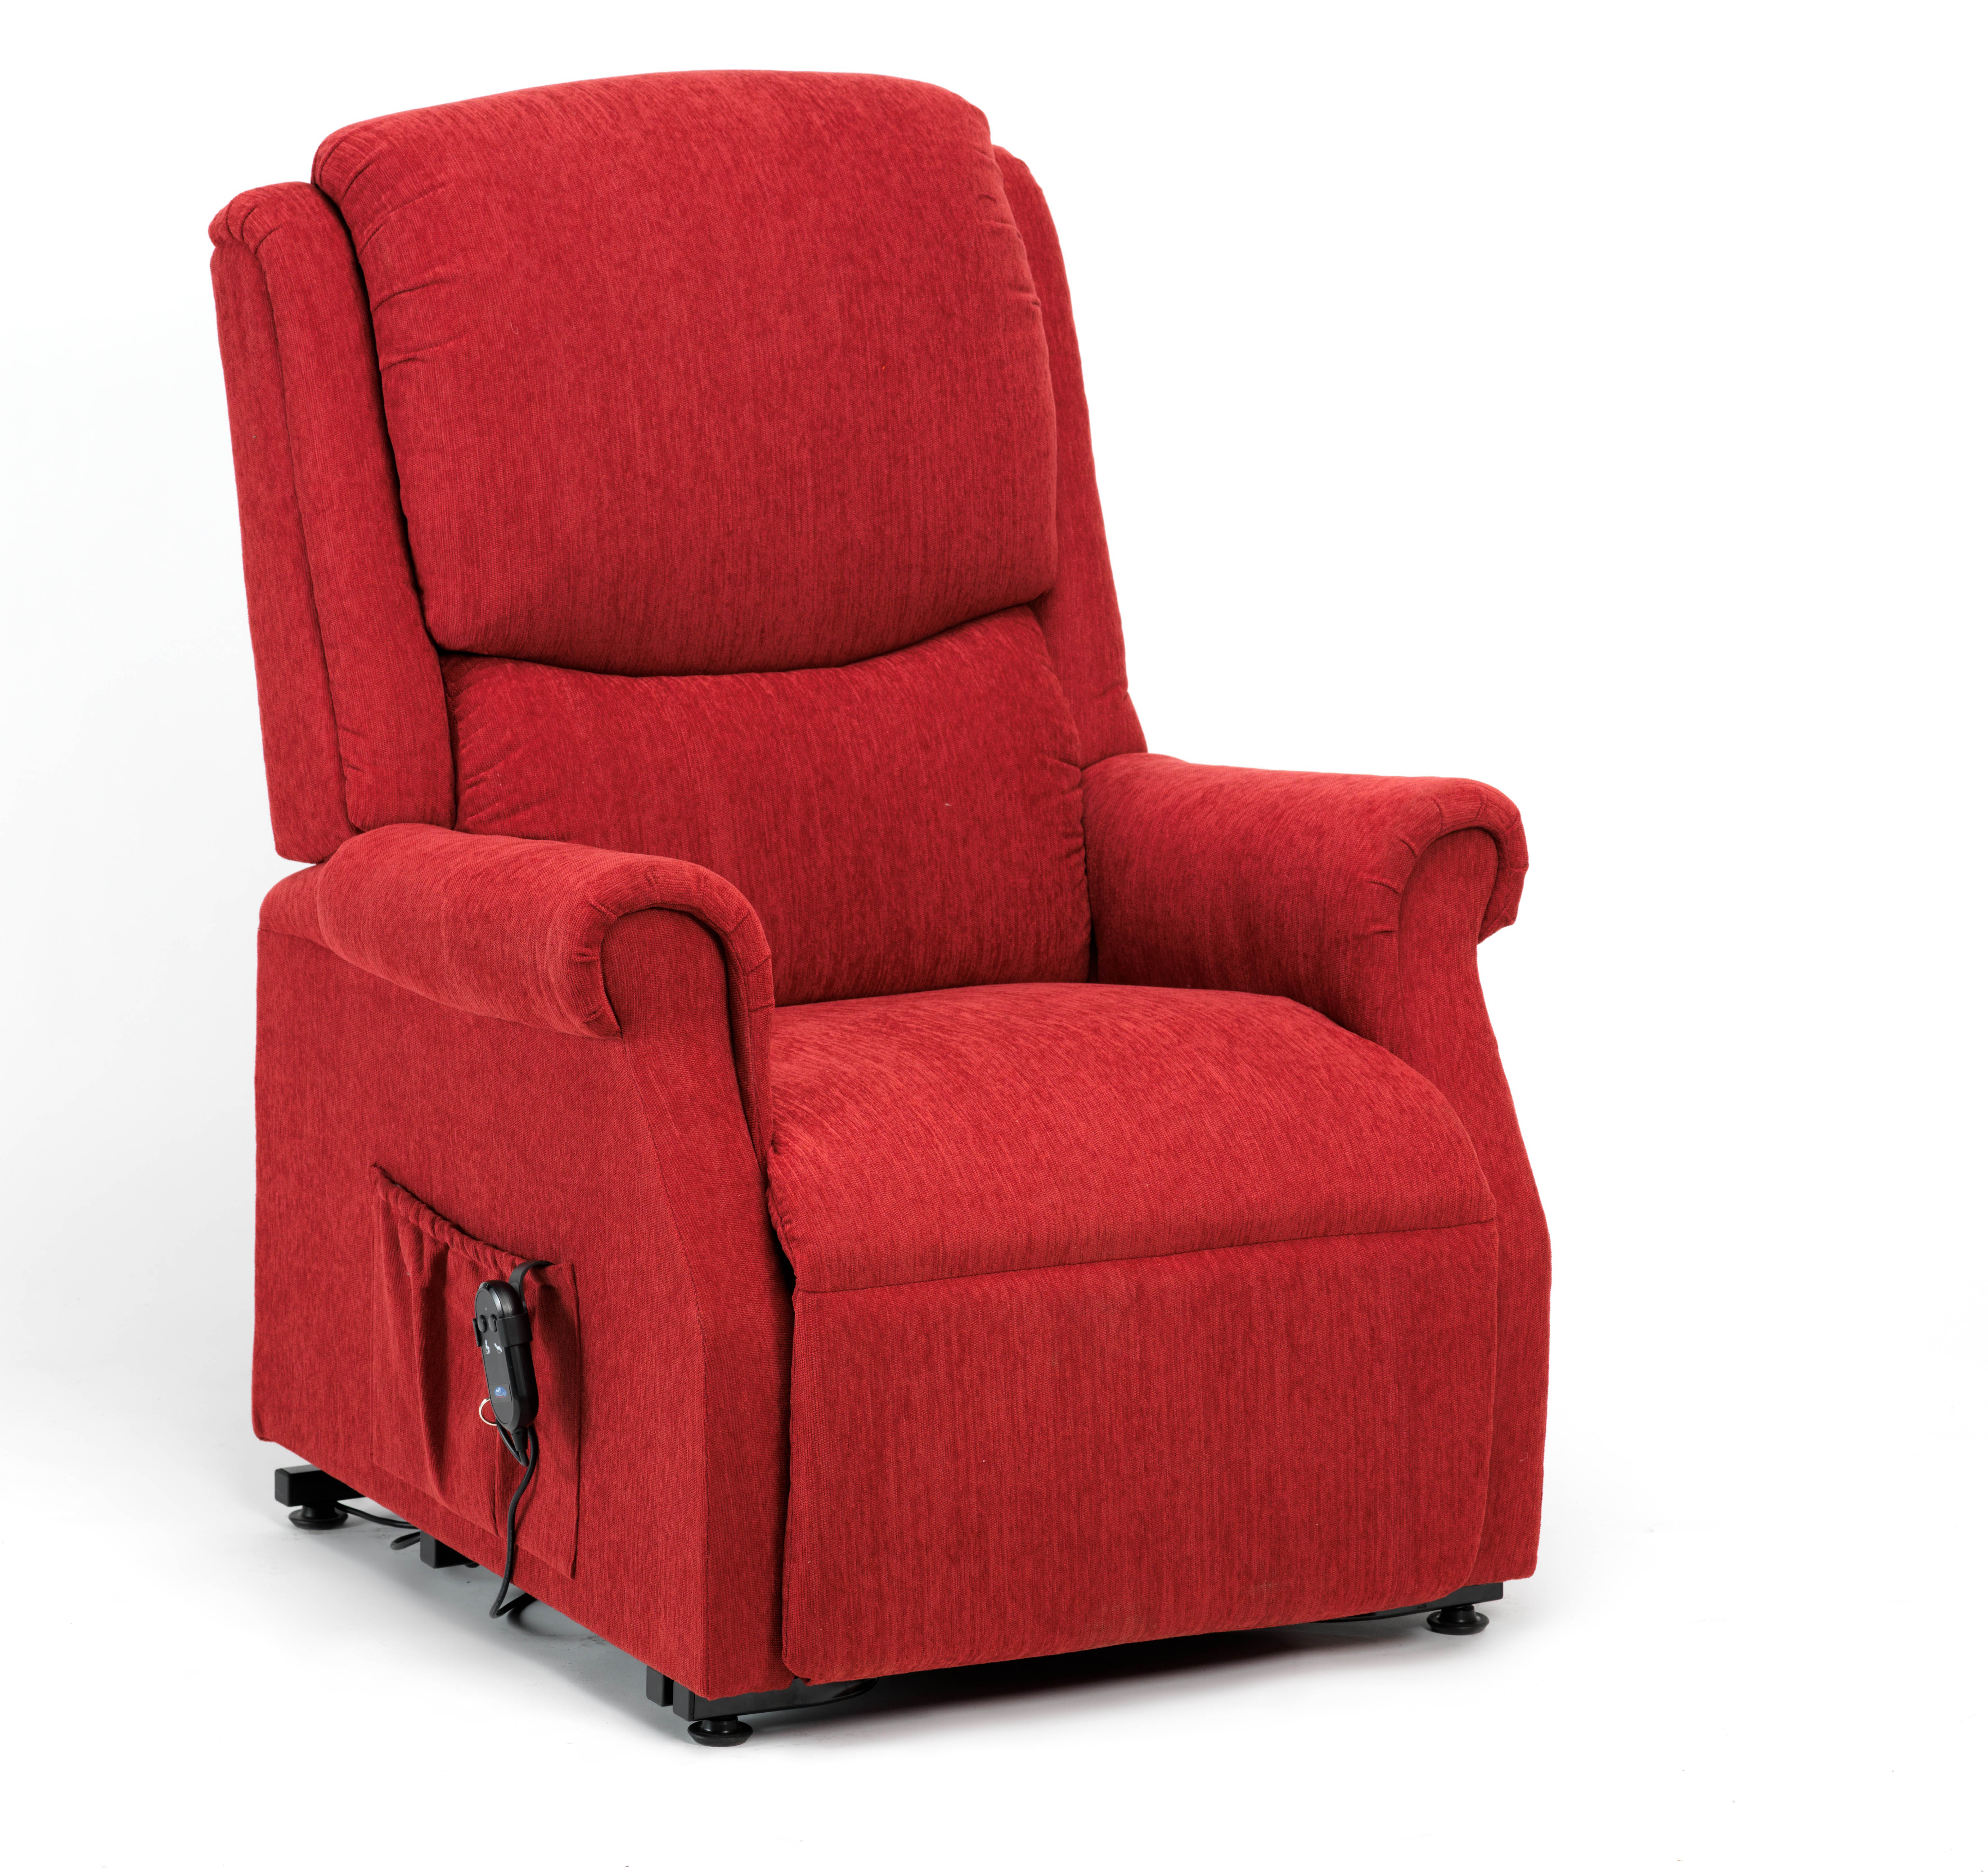 Fabric Riser Recliners Red Riser Recliner Chairs In